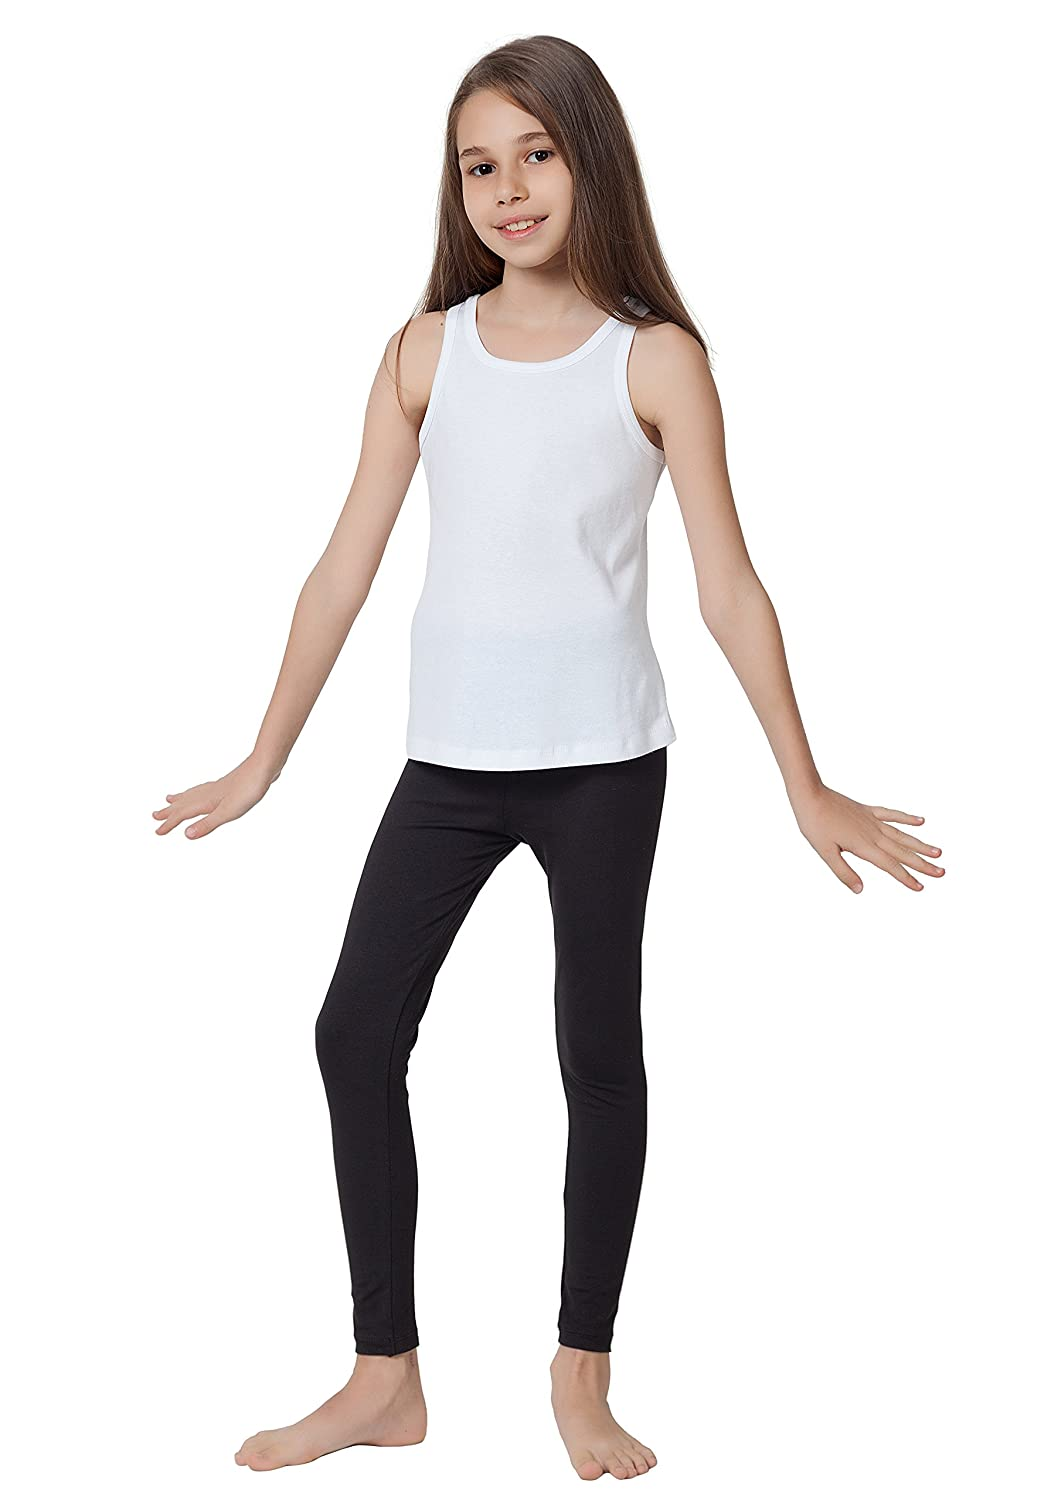 7c8828cf39 Certified Organic Cotton and Spandex – These Ankle Length leggings designed  for wearing alone, under dresses, skirts, active wear, yoga, outdoor, ...